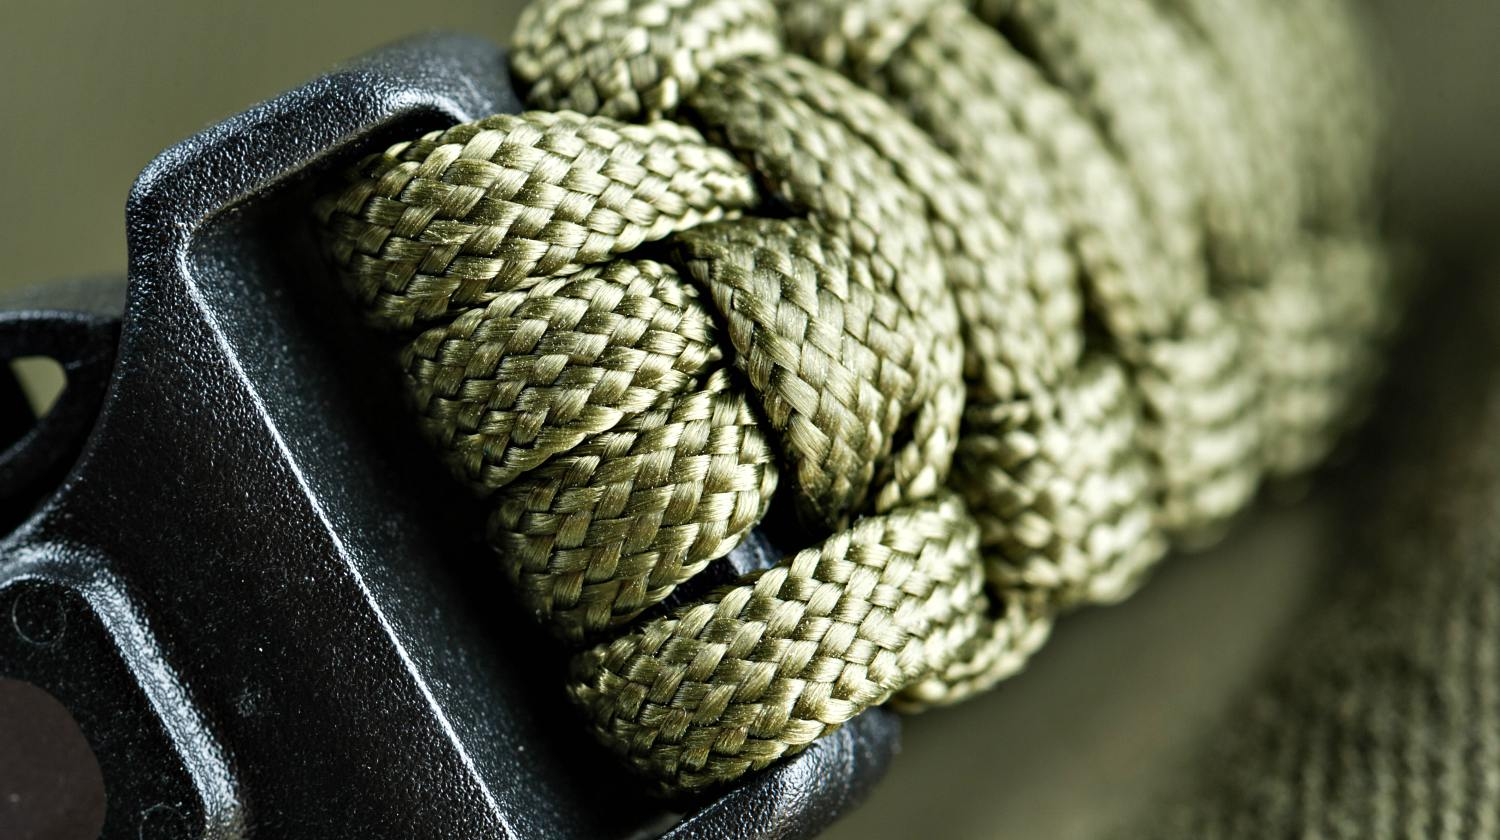 Feature | Closeup braided green paracord | How To Make A Paracord Belt: Step-By-Step Instructions